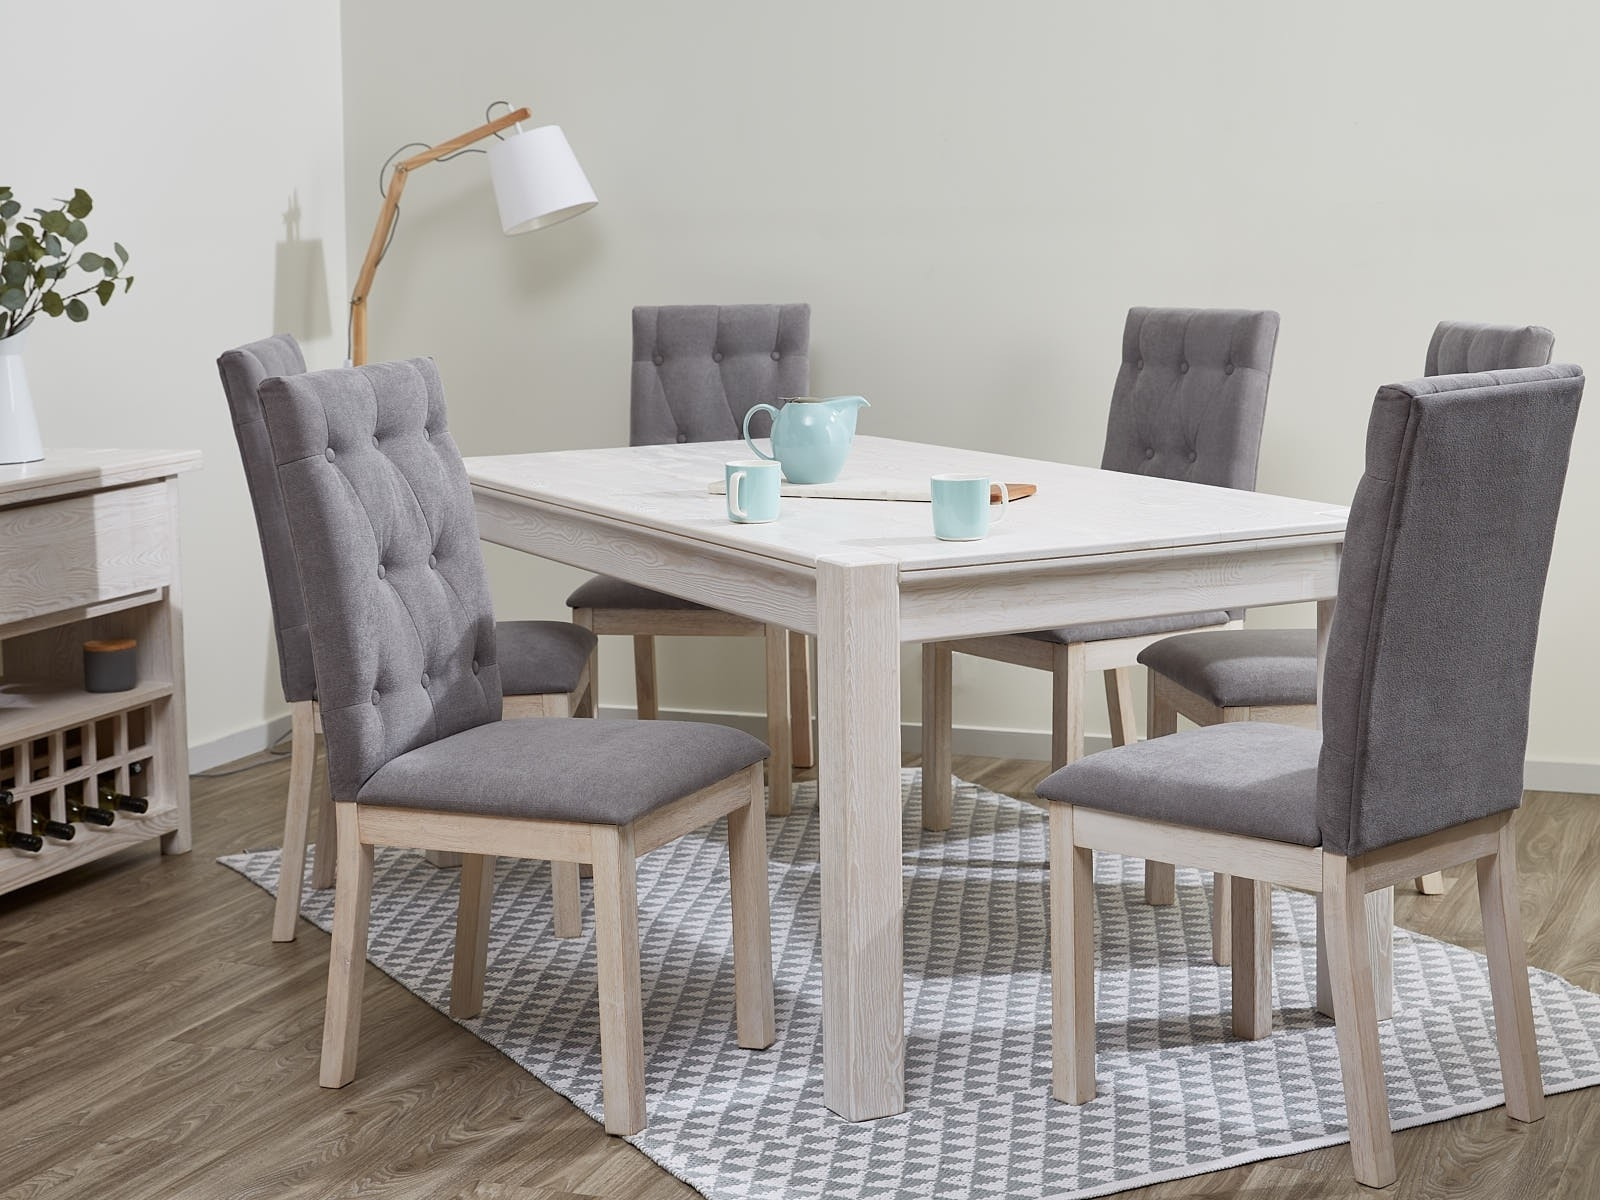 [%Sale: Fantastic Whitewash Dining Sets. 50% Off Rrp. Limited Stock For Preferred White Dining Suites|White Dining Suites Within 2018 Sale: Fantastic Whitewash Dining Sets. 50% Off Rrp. Limited Stock|Widely Used White Dining Suites With Sale: Fantastic Whitewash Dining Sets. 50% Off Rrp. Limited Stock|Latest Sale: Fantastic Whitewash Dining Sets. 50% Off Rrp (View 4 of 25)